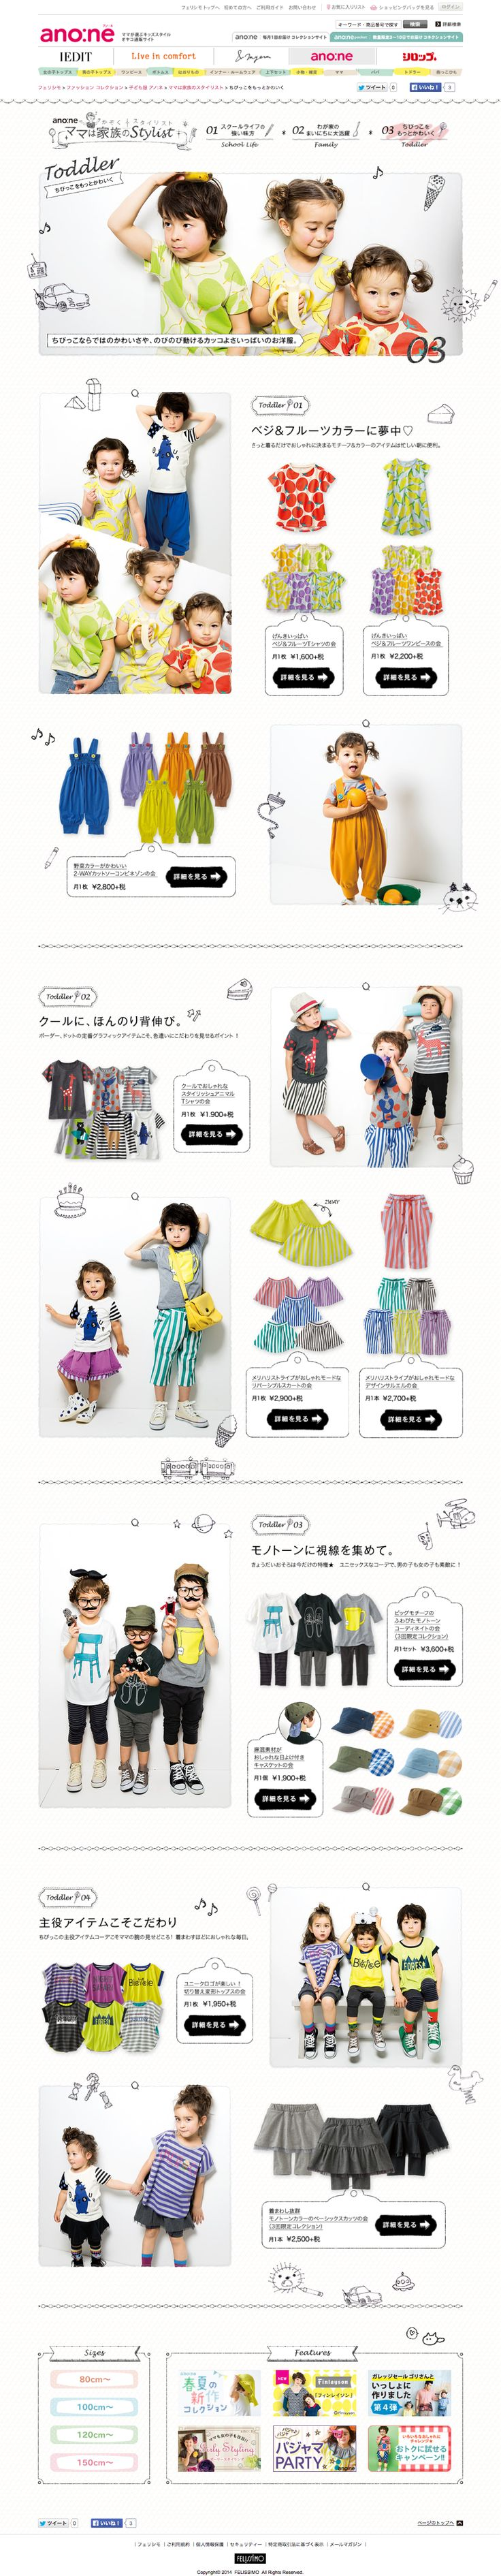 http://www.felissimo.co.jp/fashion/anone/mamastylist/toddler/index.cfm?wk=5333